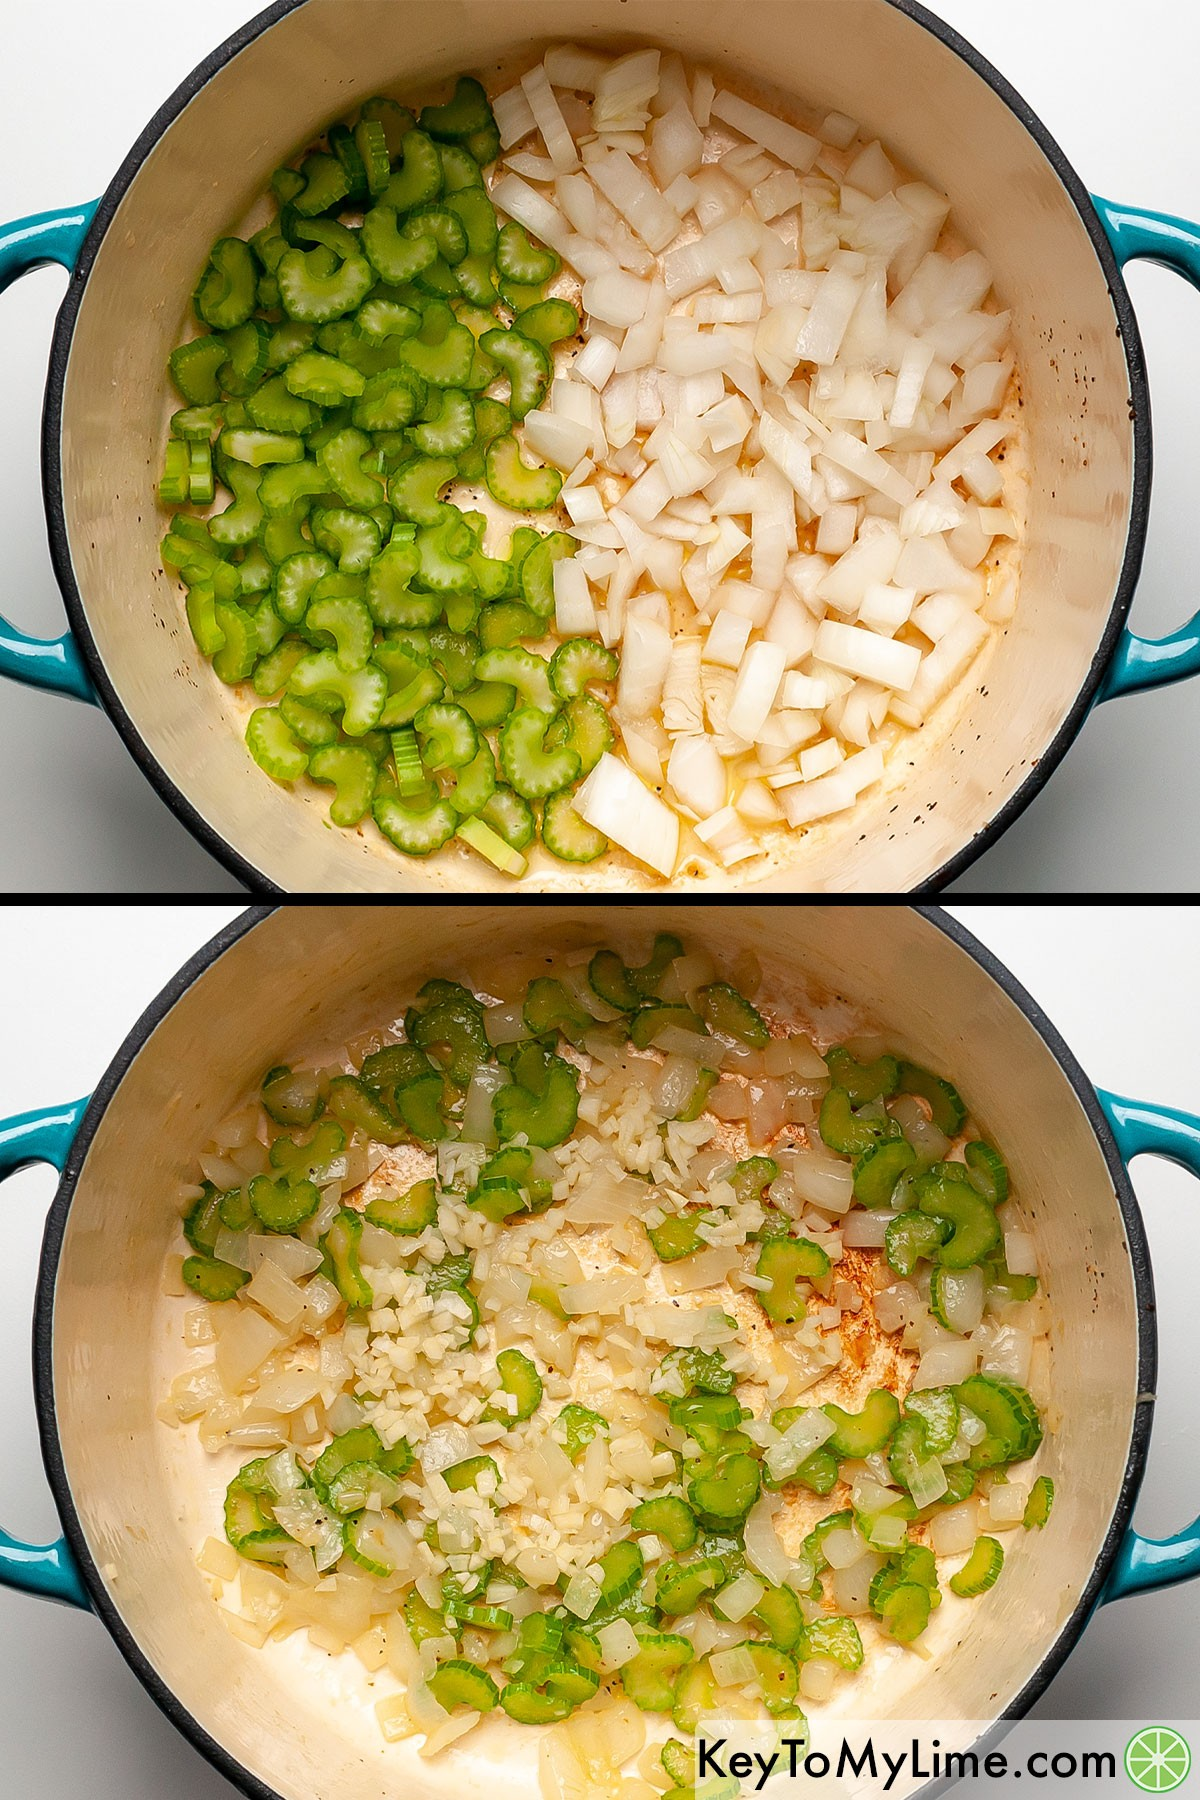 Chopped celery and onion in a Dutch oven before and after cooking.